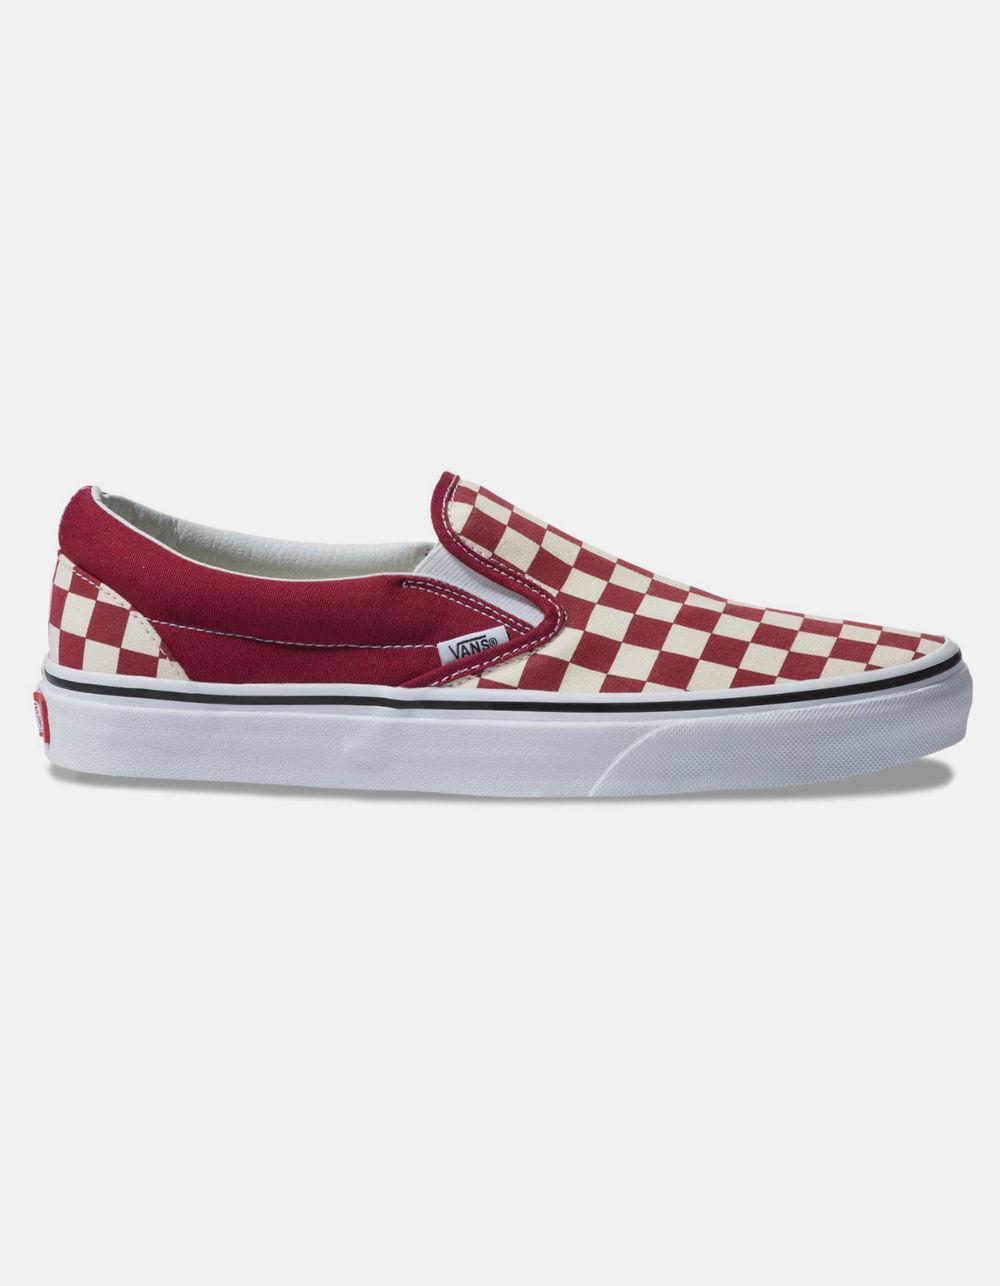 Lyst - Vans Checkerboard Classic Slip-on Rumba Red   True White ... 0c6d8a90a